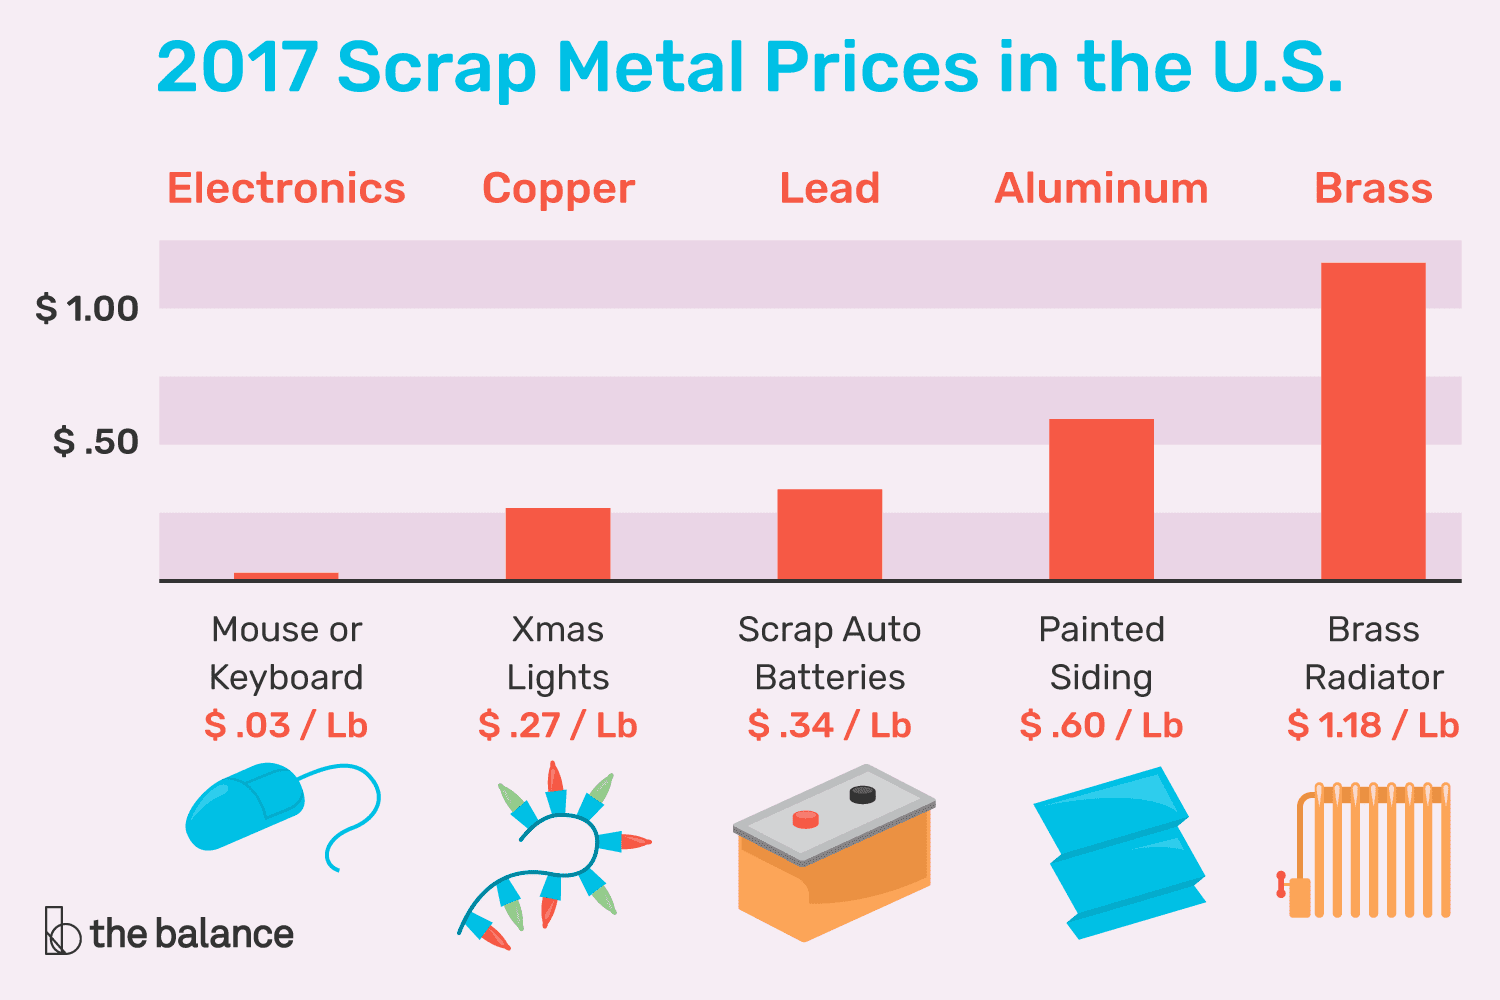 Get Current Scrap Metal Prices in the U.S.